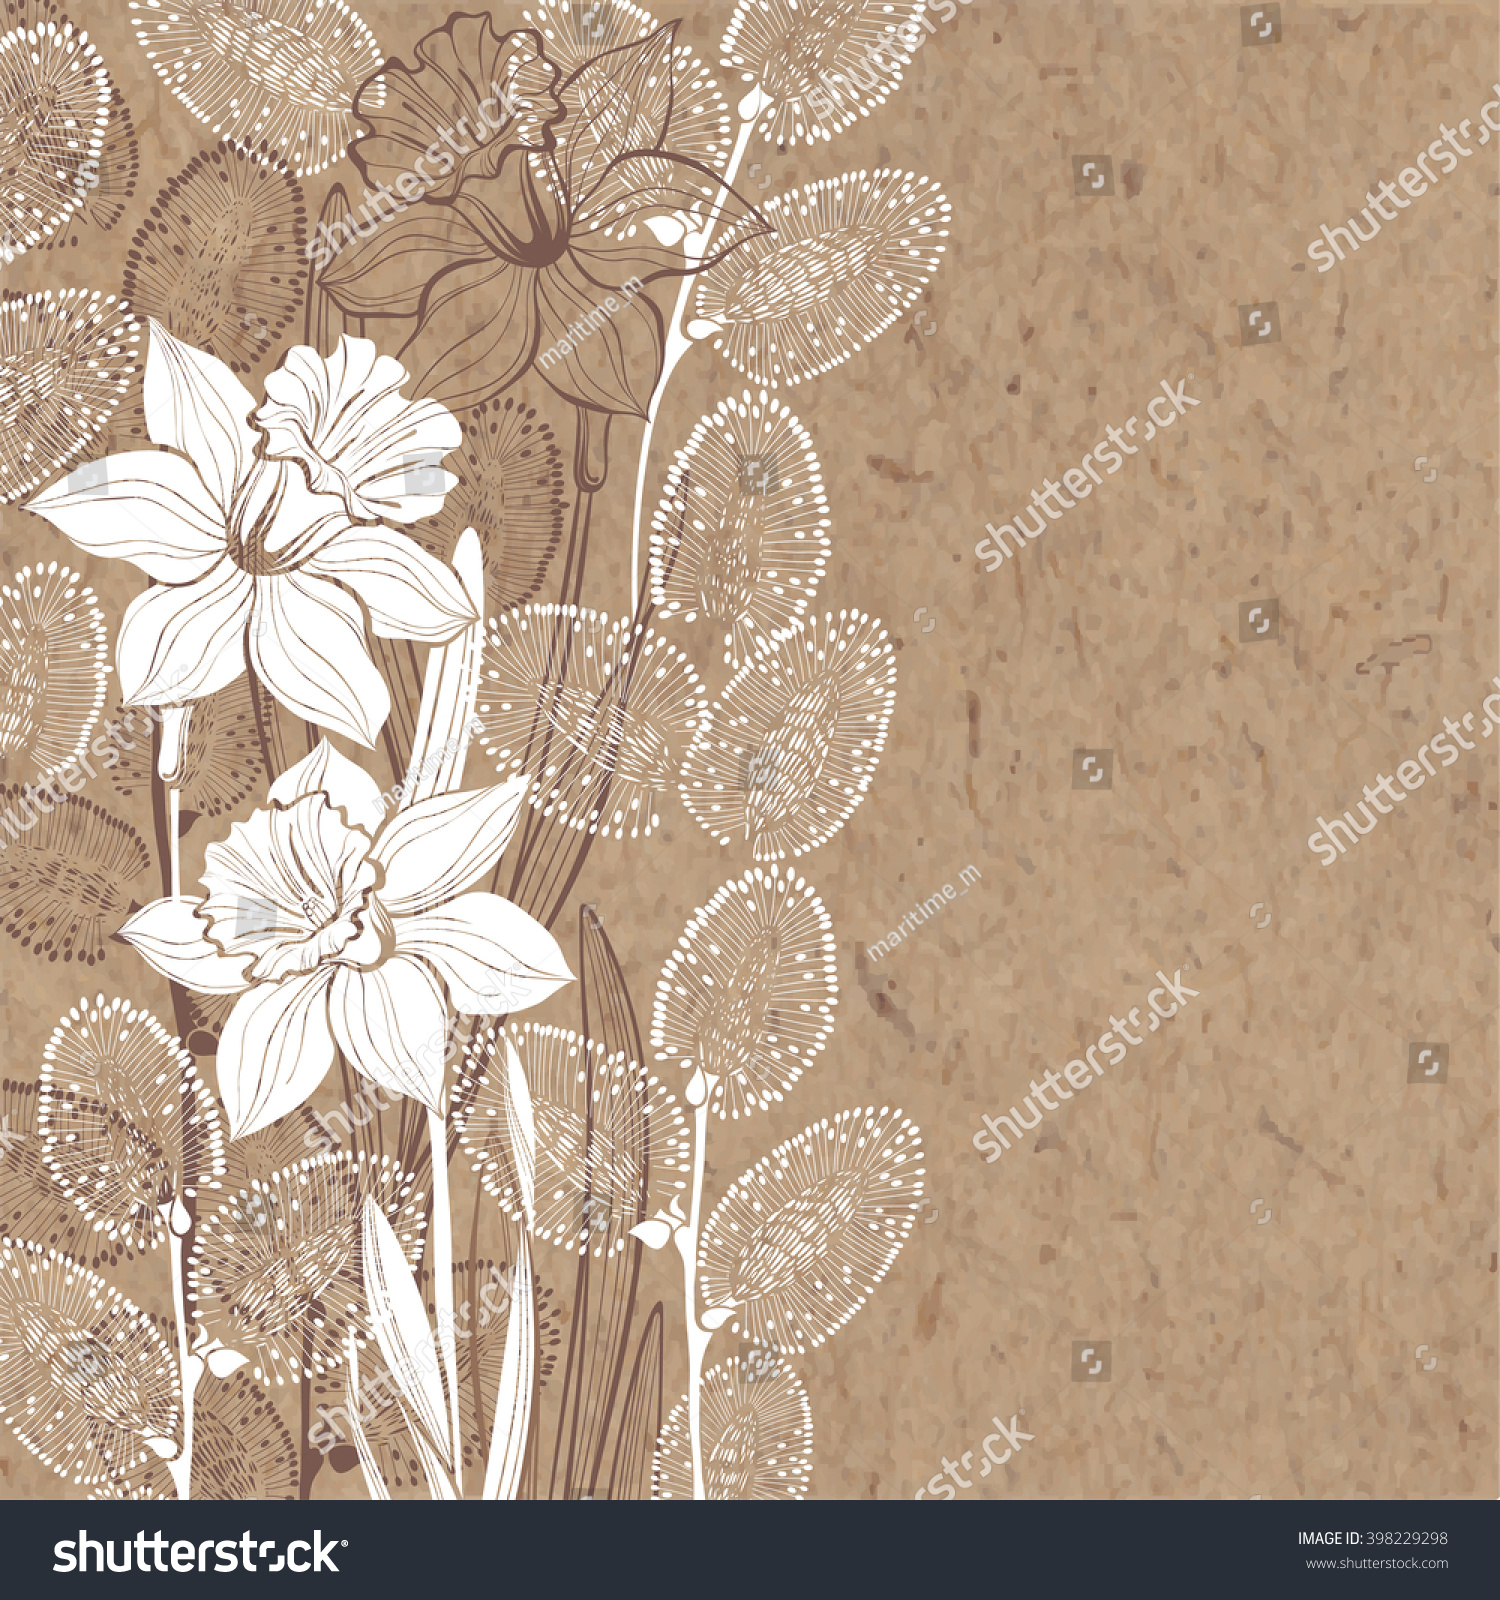 Handdrawn Vector Background Spring Flowers Daffodils Stock Vector